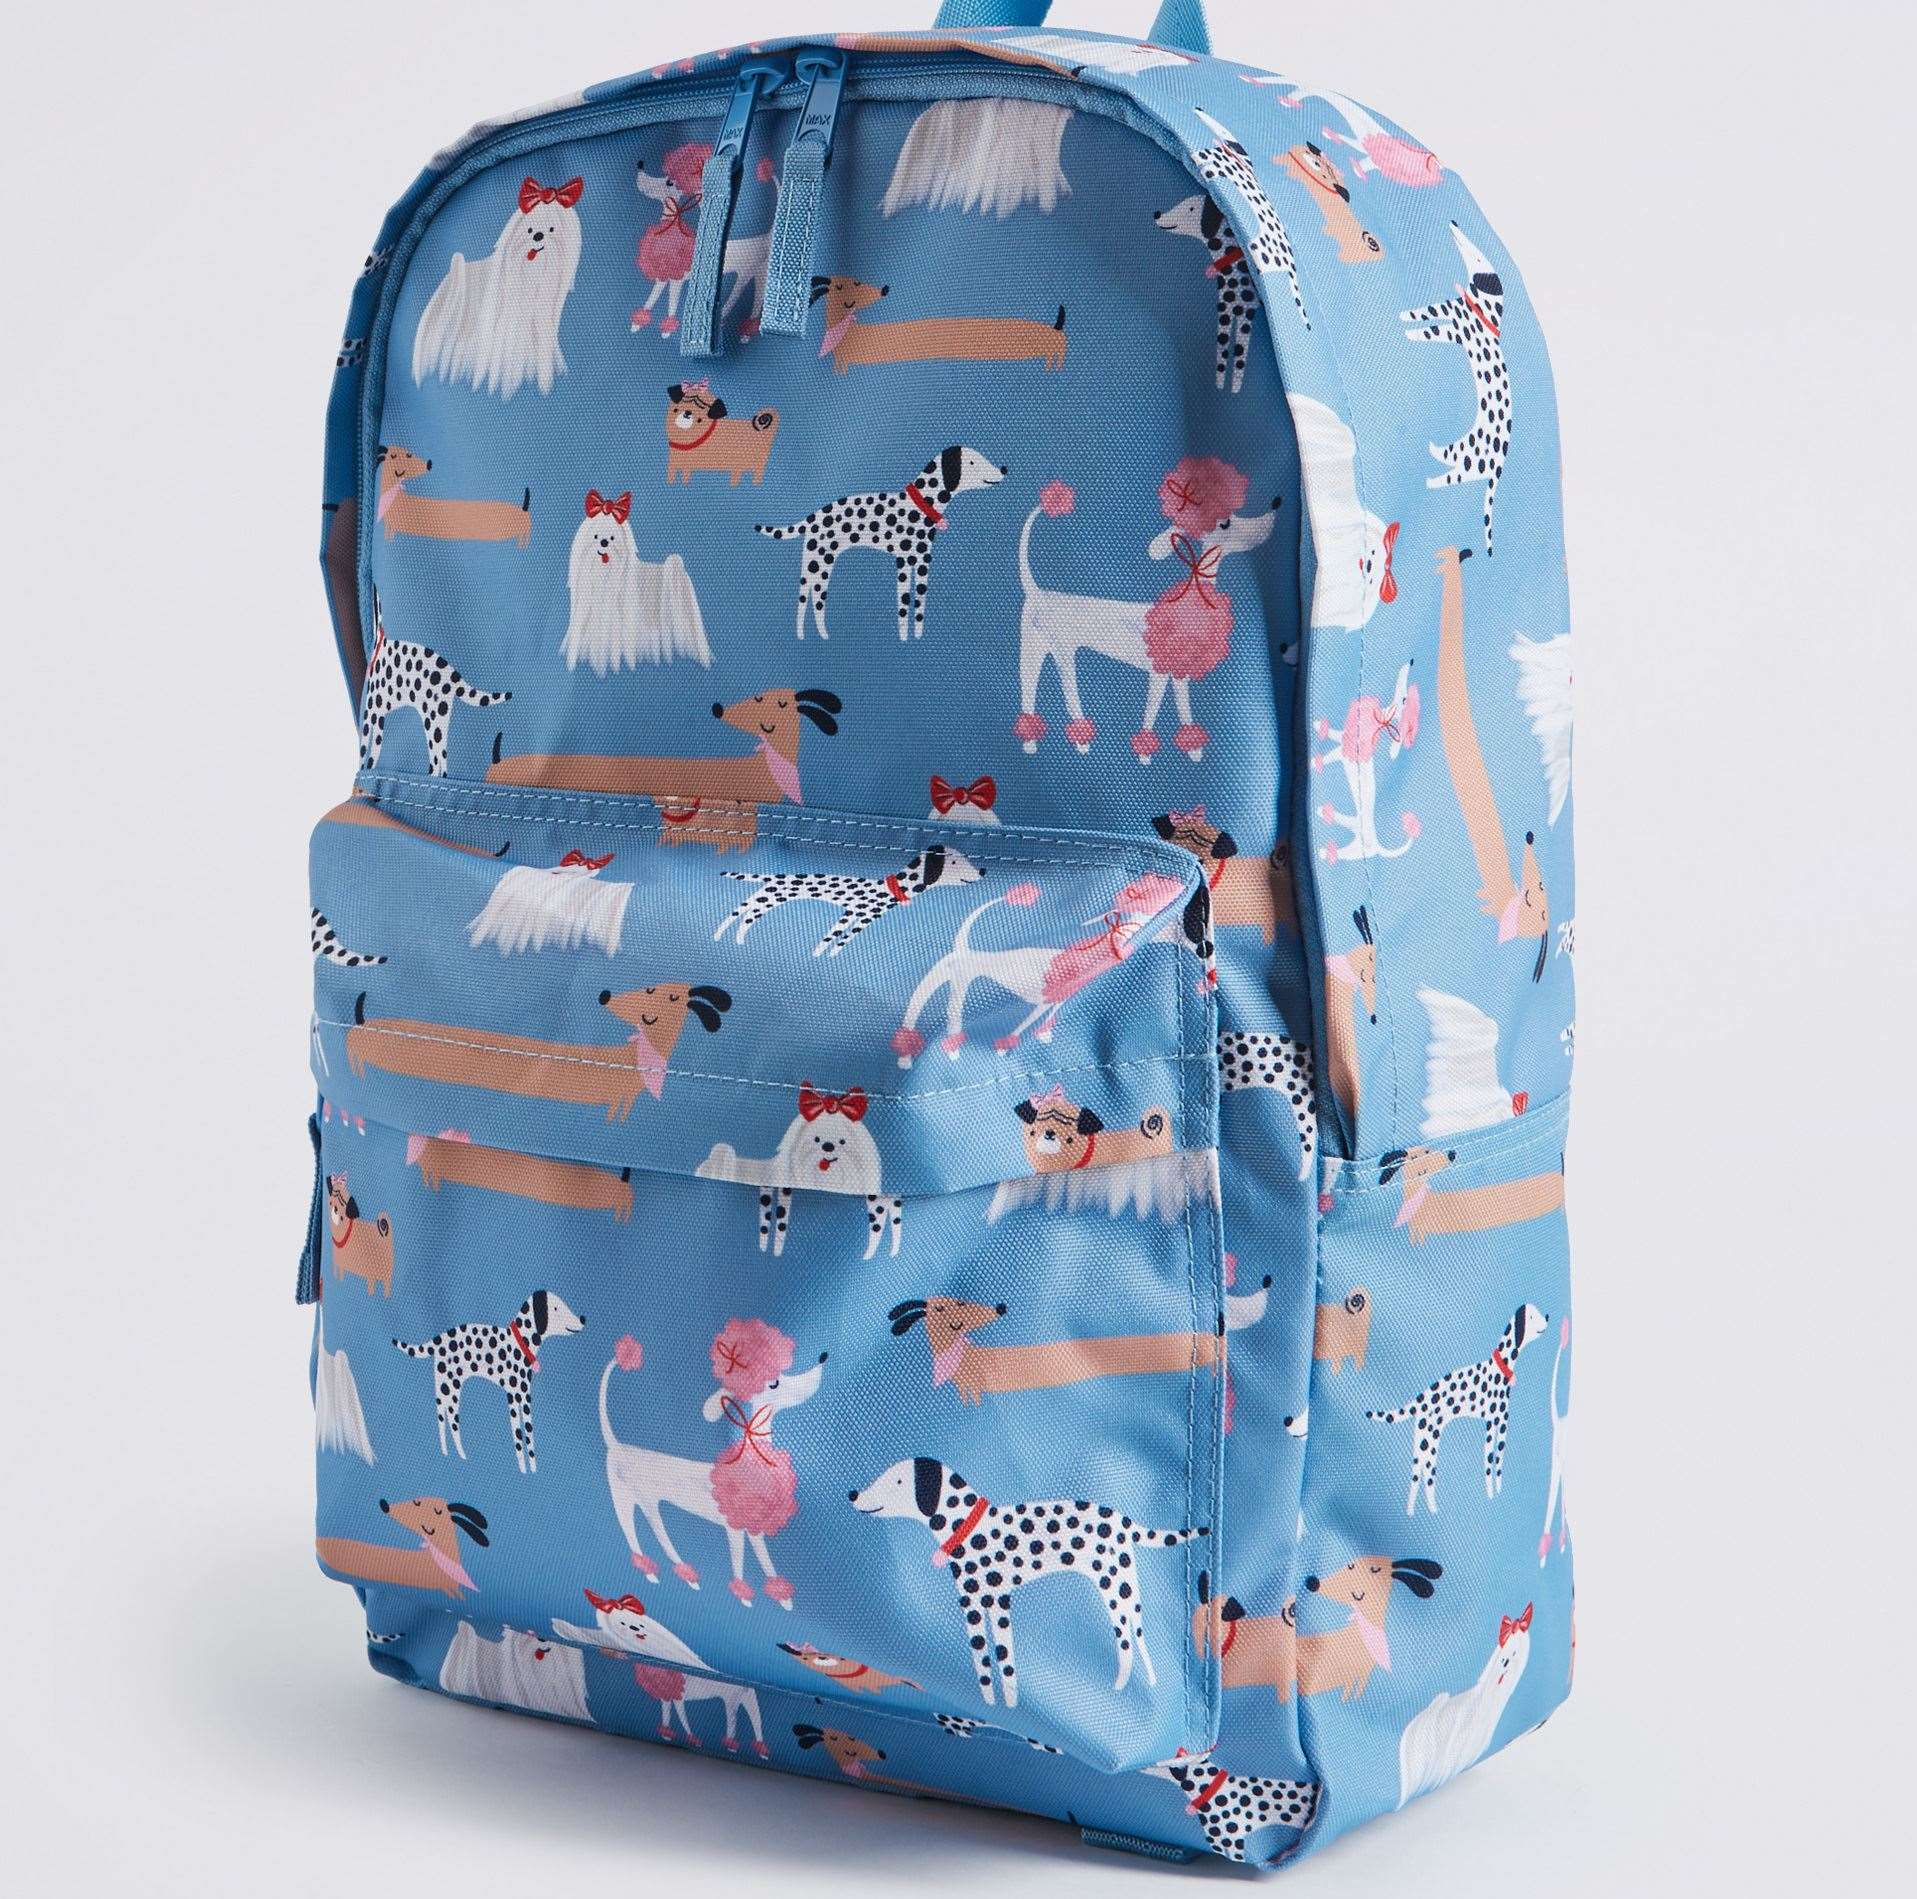 Dog patterned water repellent back pack, £20 from M&S